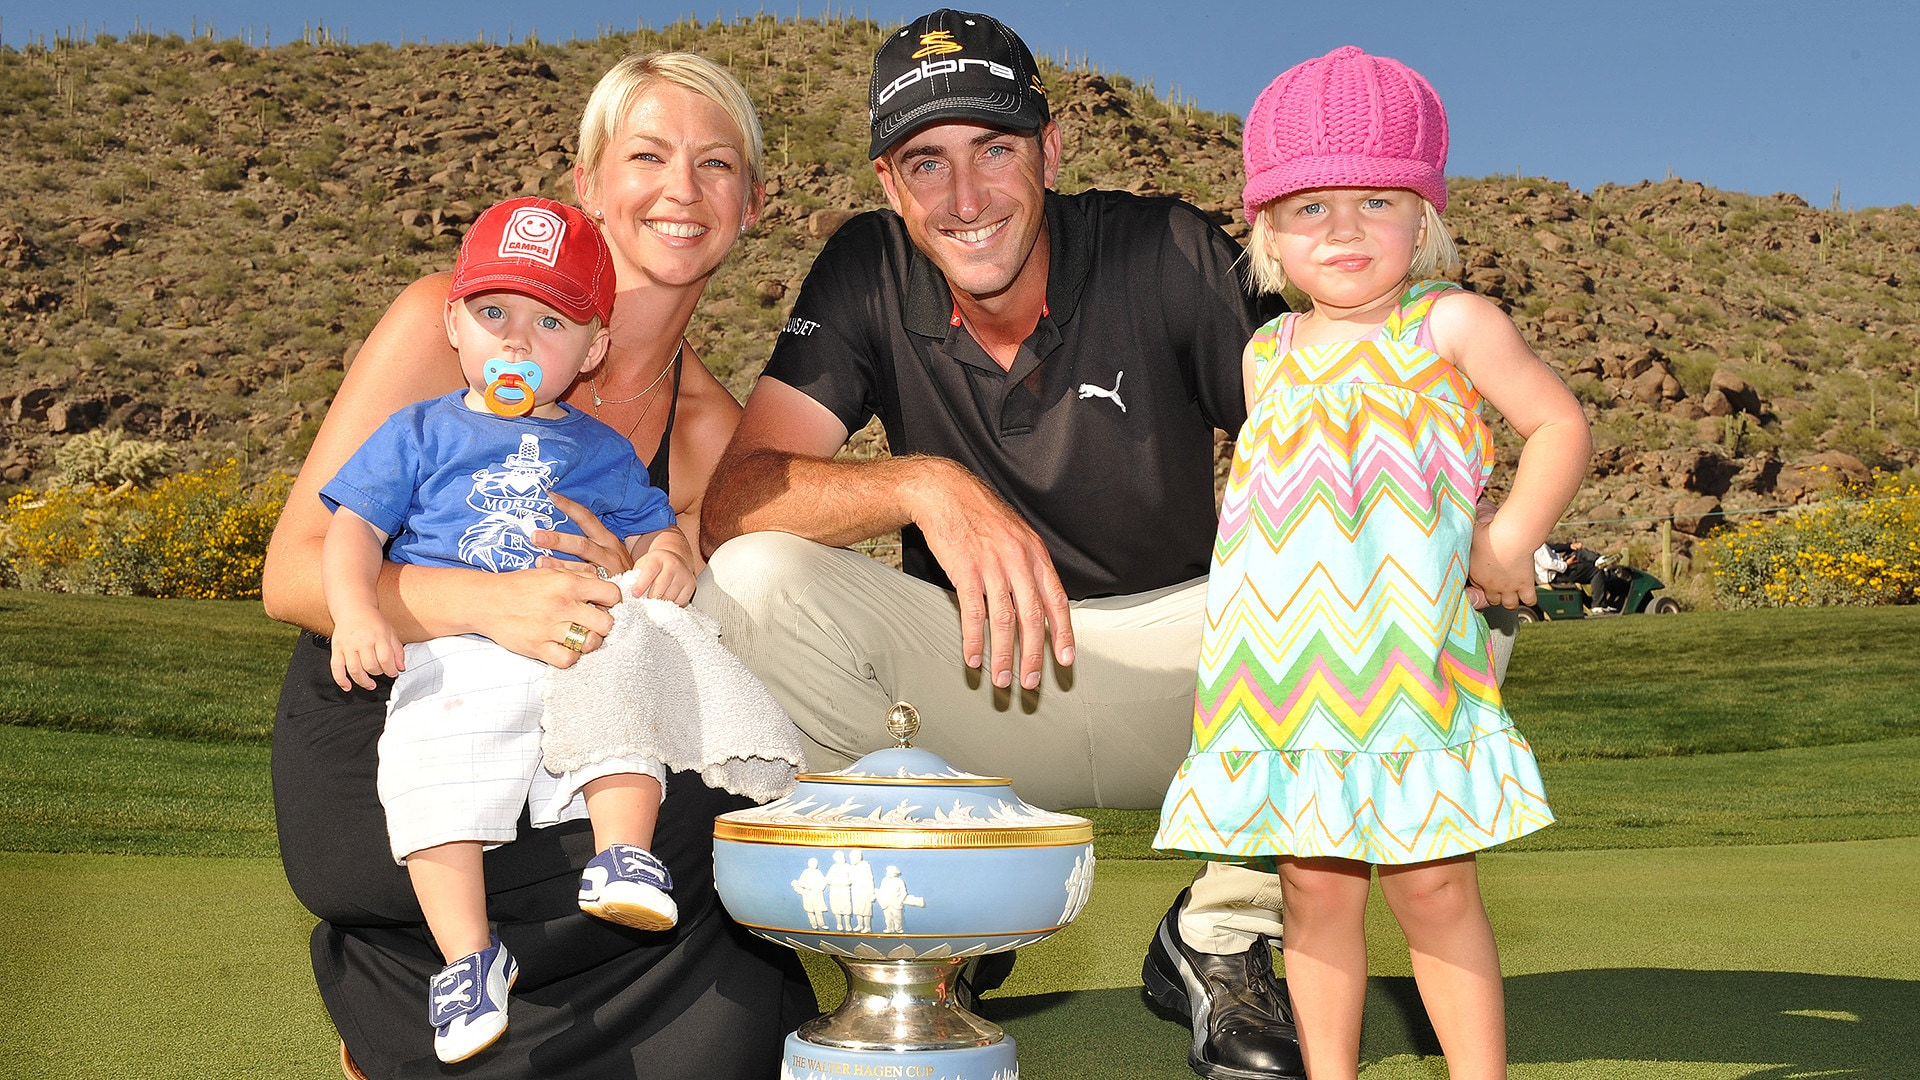 Geoff Ogilvy and family at the 2009 WGC-Accenture Match Play.